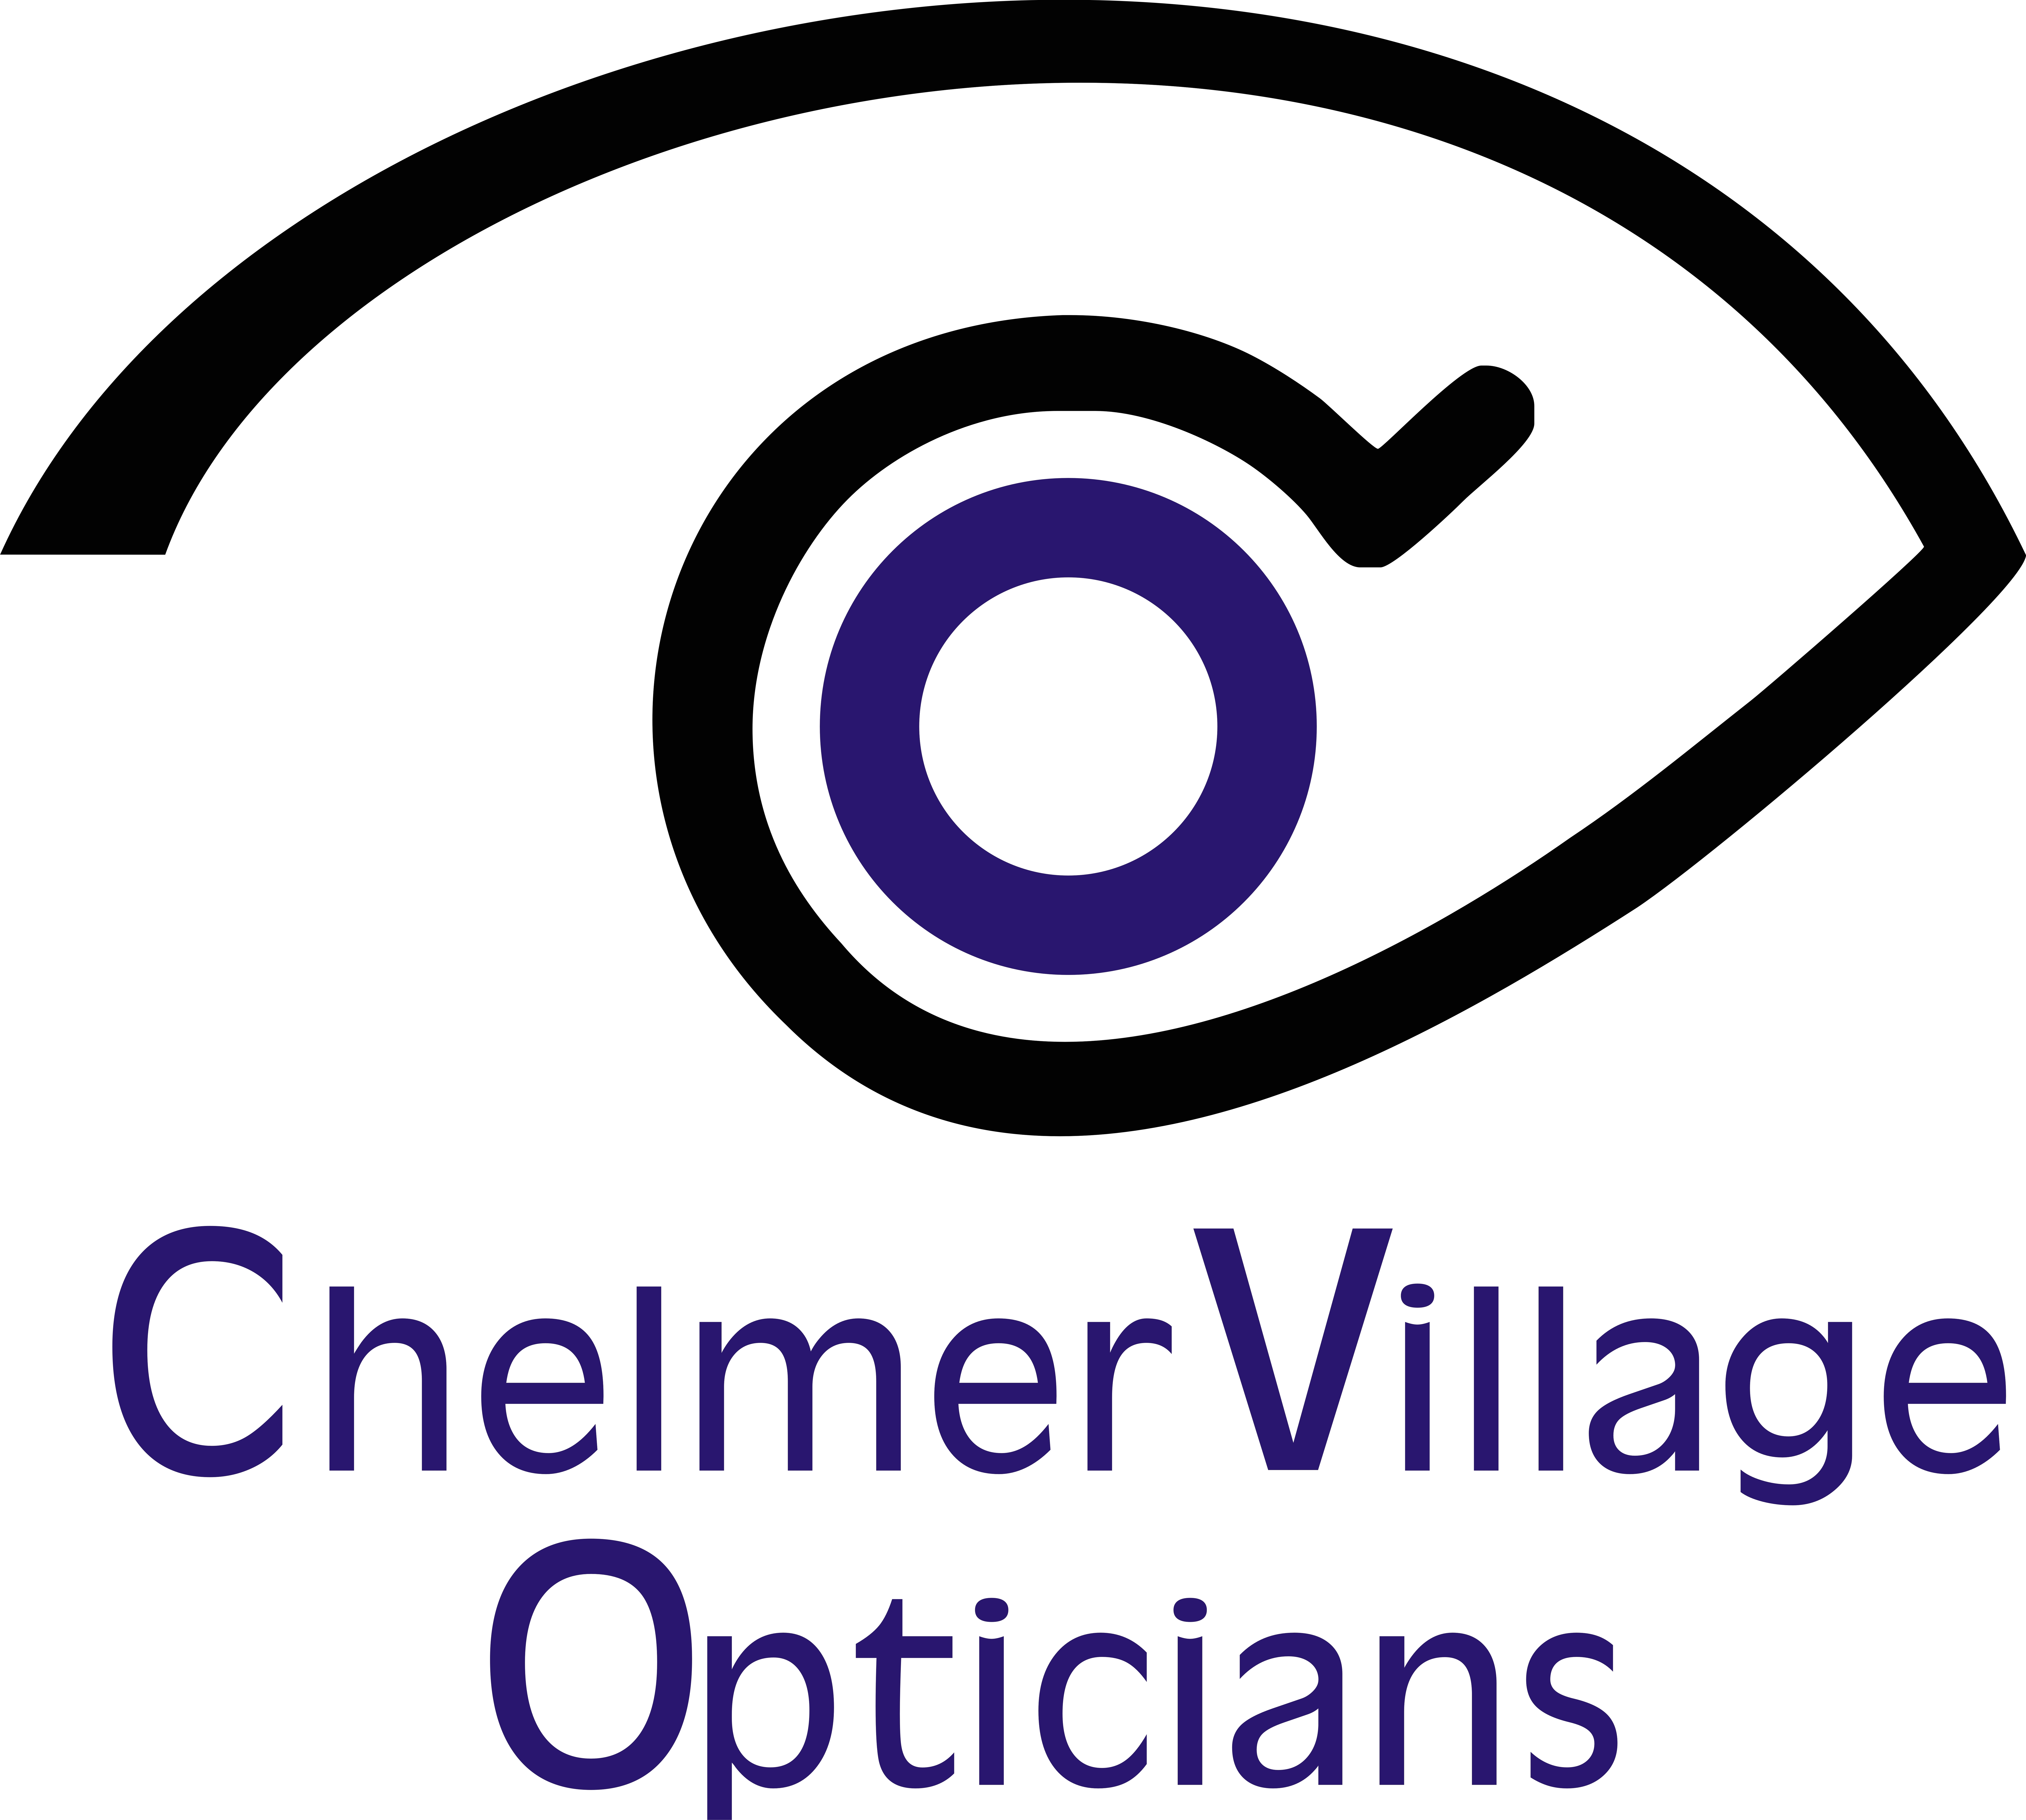 Chelmer Village Chelmsford Opticians Eye sight tests for glasses and contact lenses